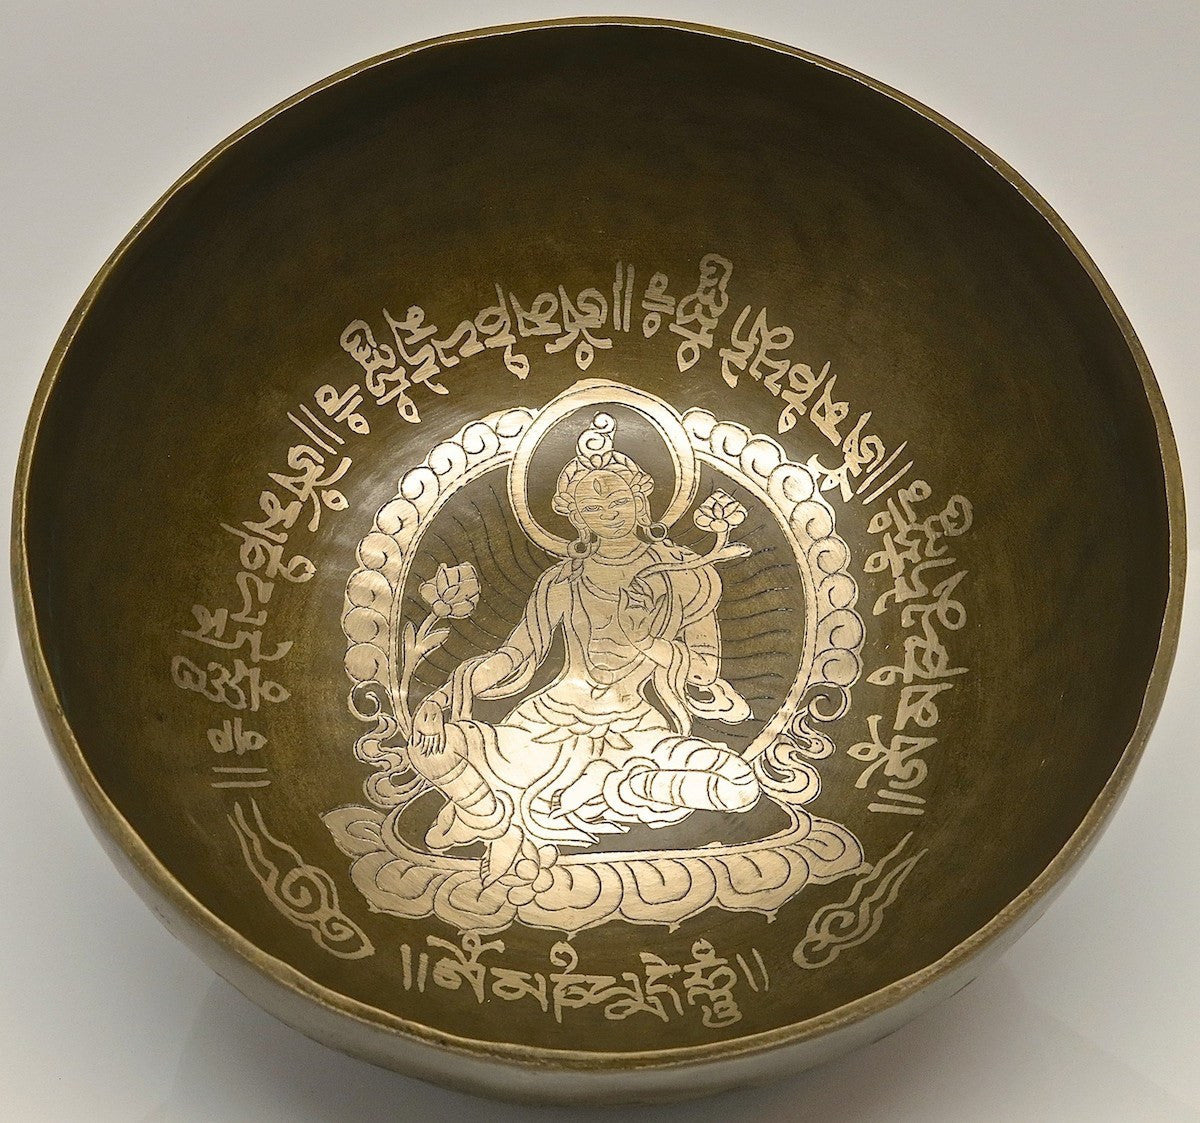 Golden Bodhisattva Tibetan Singing Bowl - Golden Bodhi Singing Bowl 7.75""